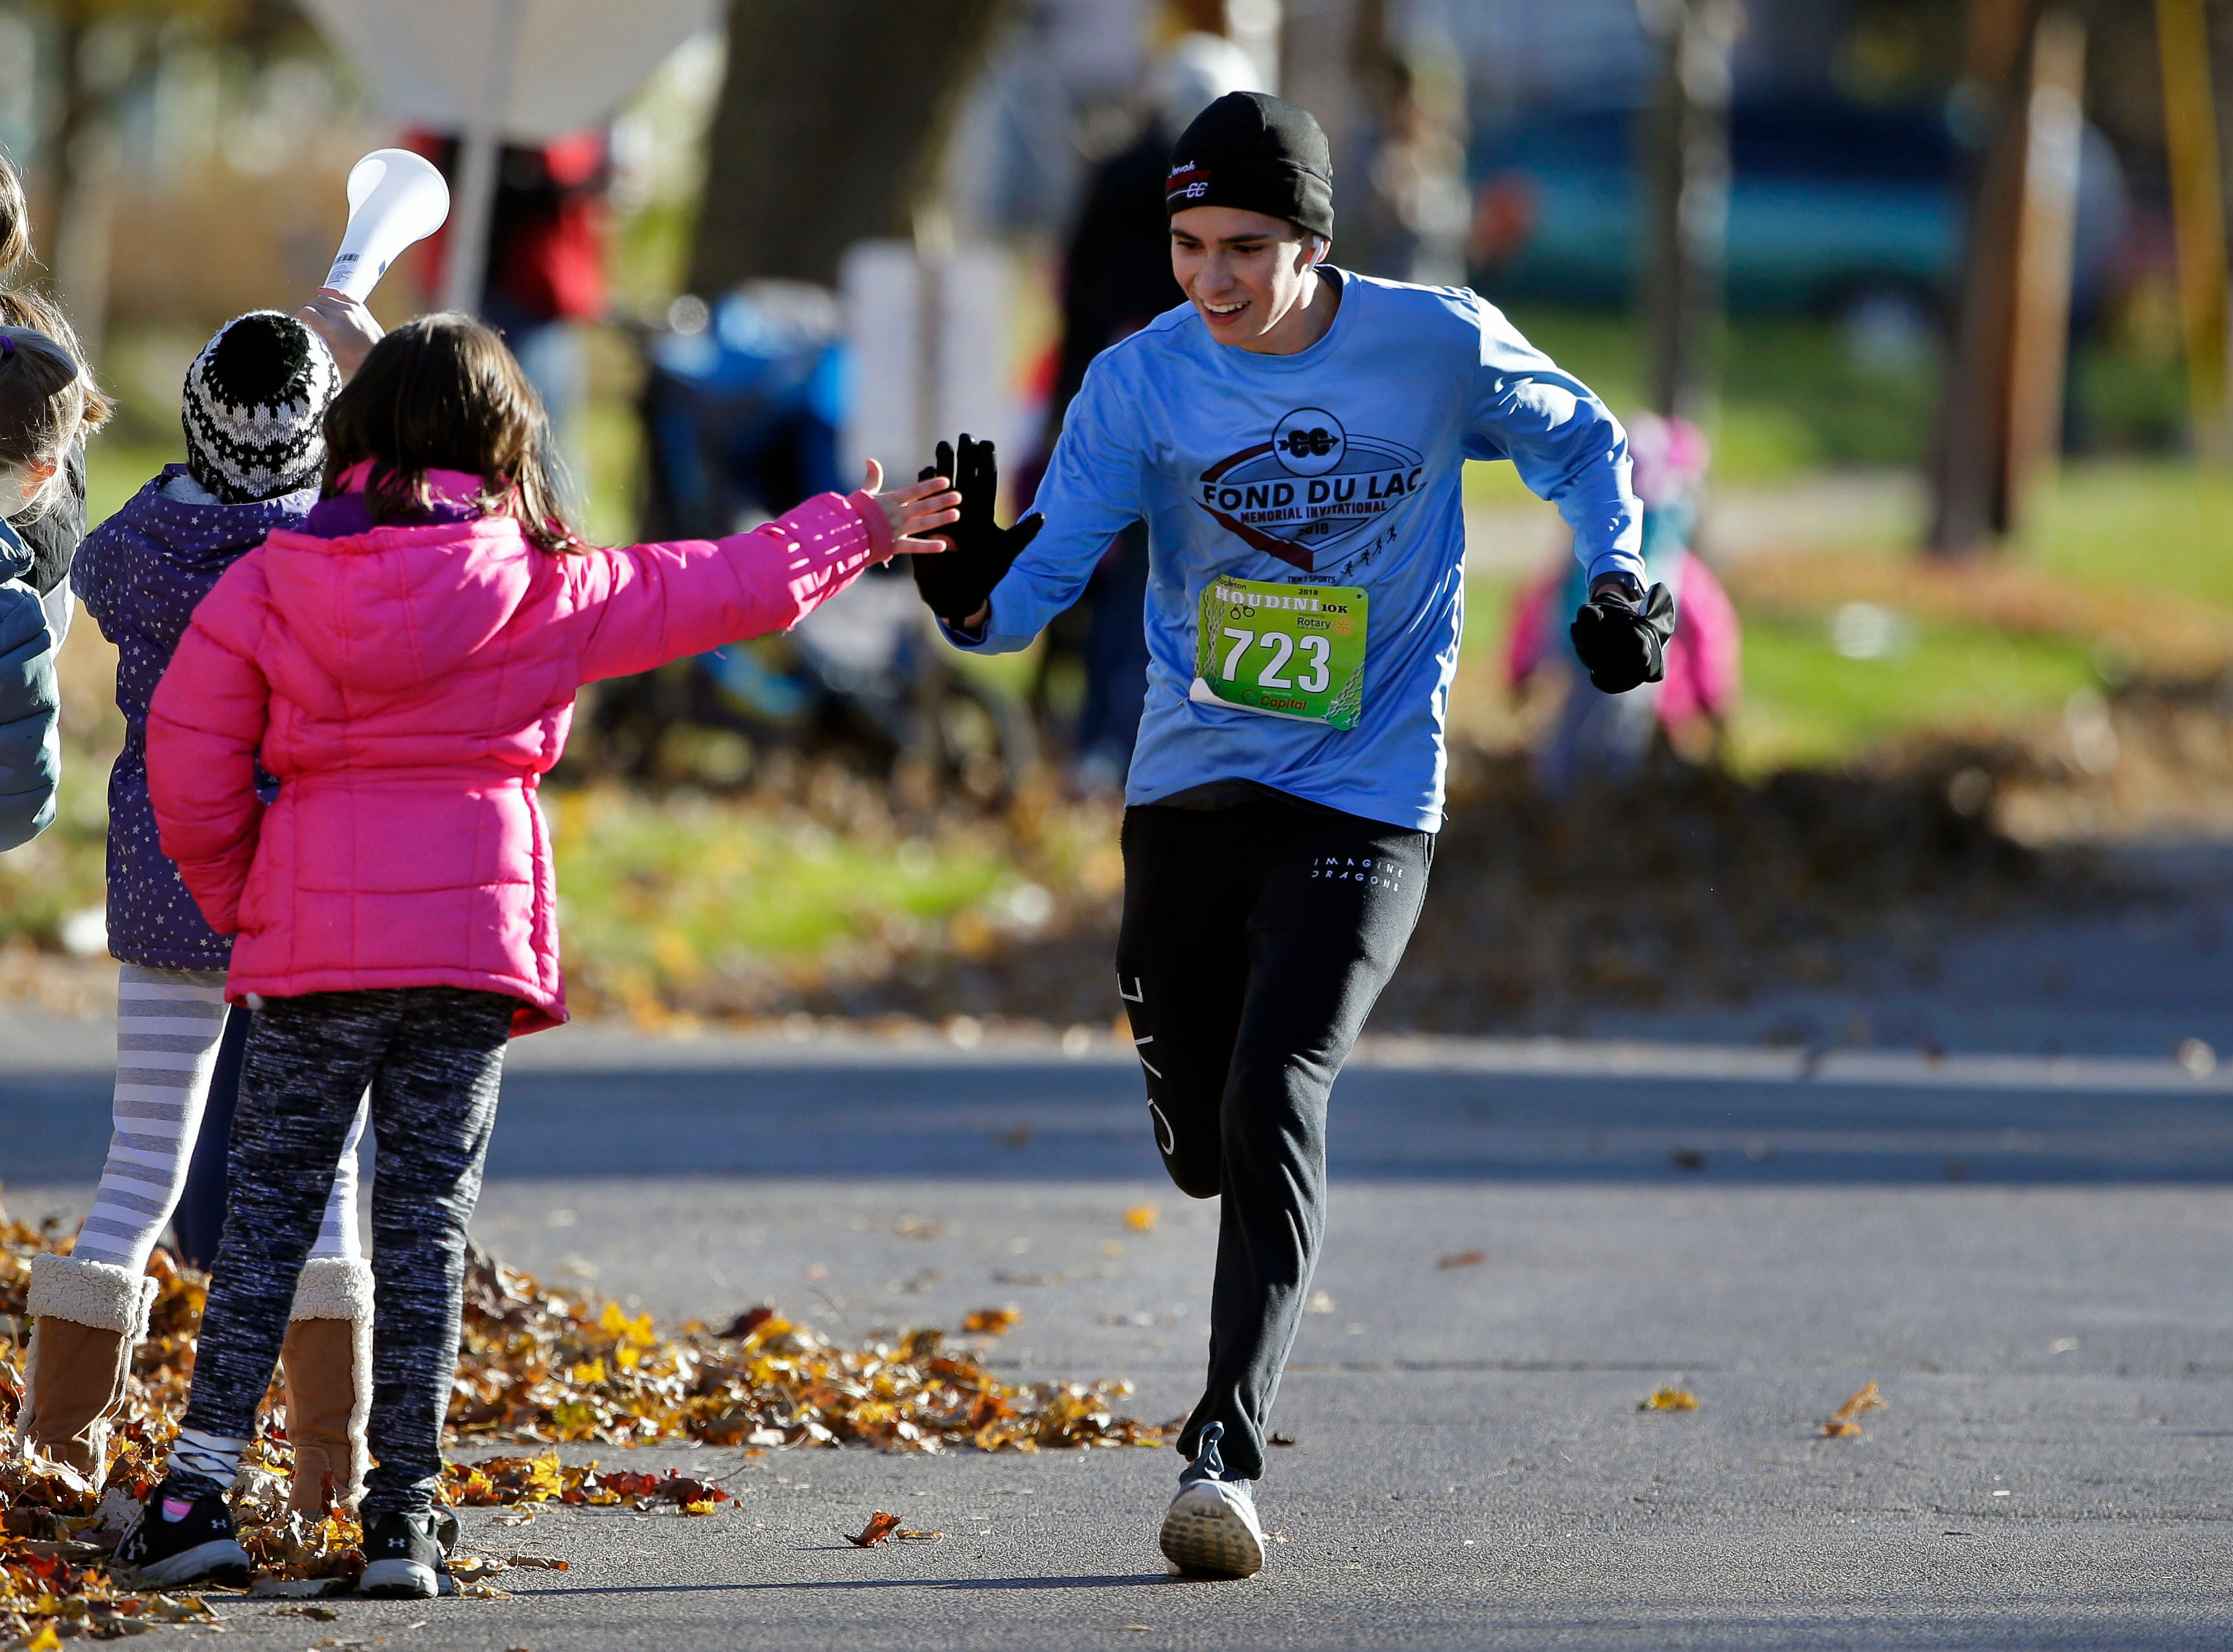 Josh Ryan gets congratulations near the finish as the 4th annual Appleton Houdini 10K takes place Saturday, November 3, 2018, in Appleton, Wis.Ron Page/USA TODAY NETWORK-Wisconsin